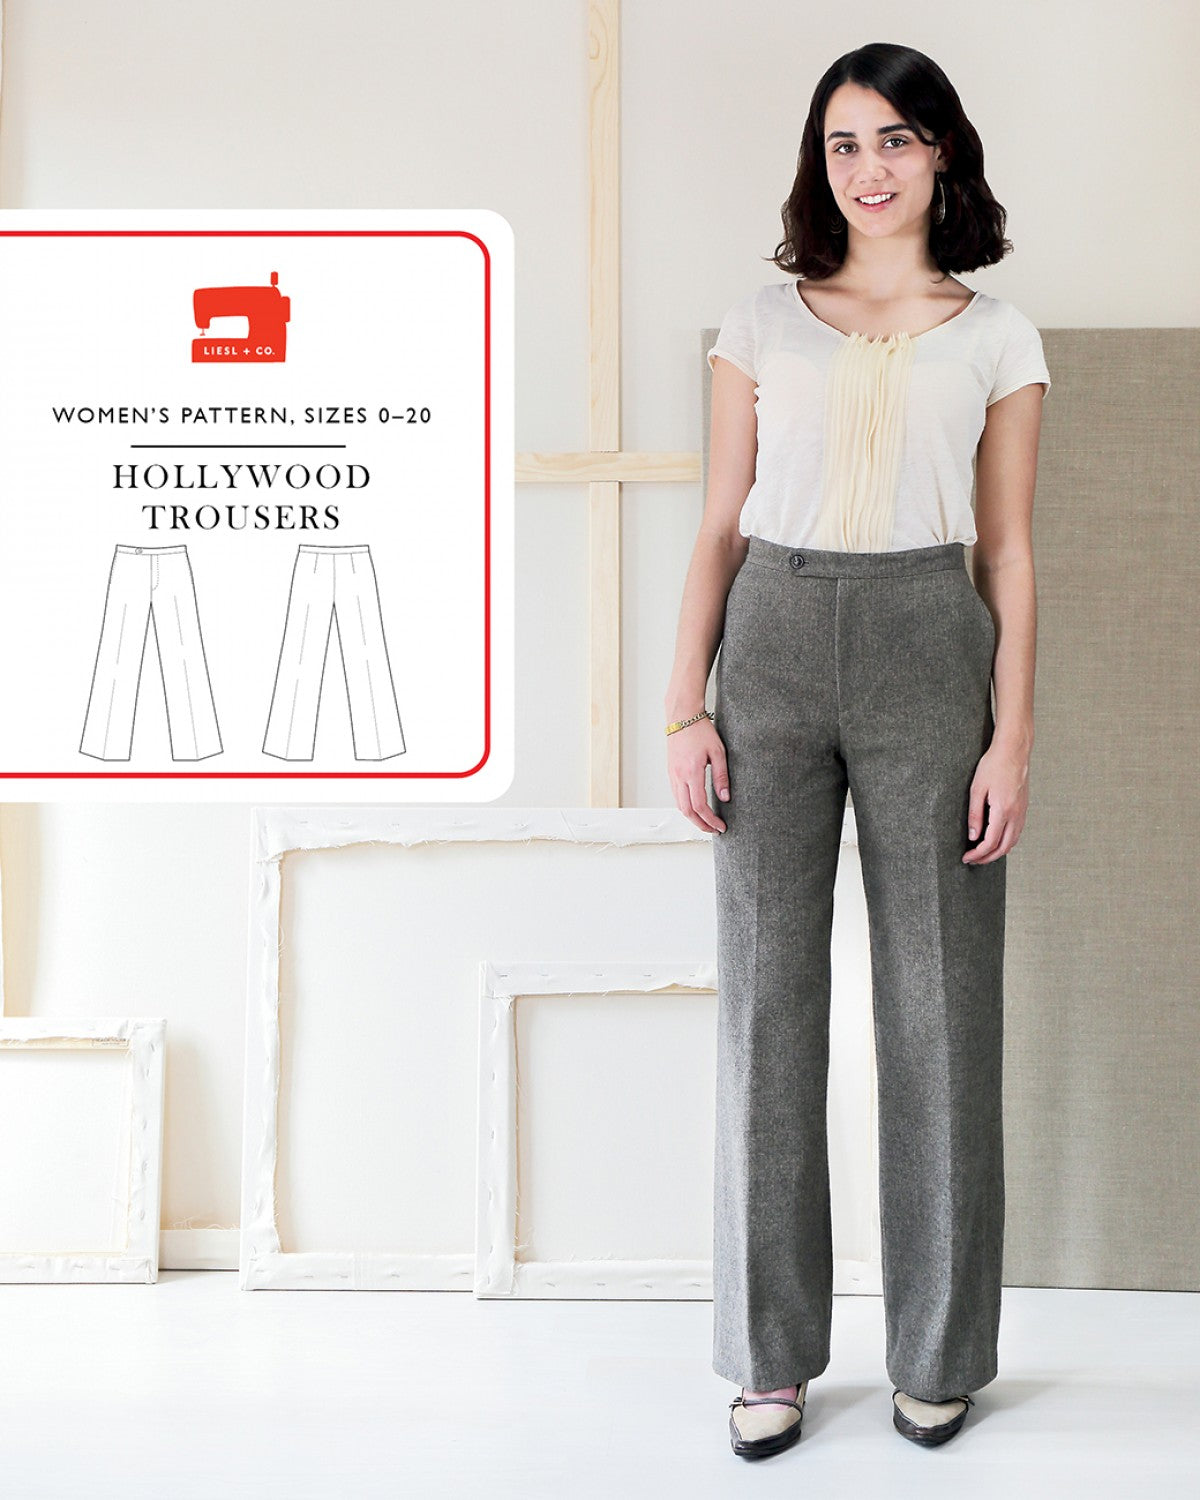 Hollywood Trousers Pattern